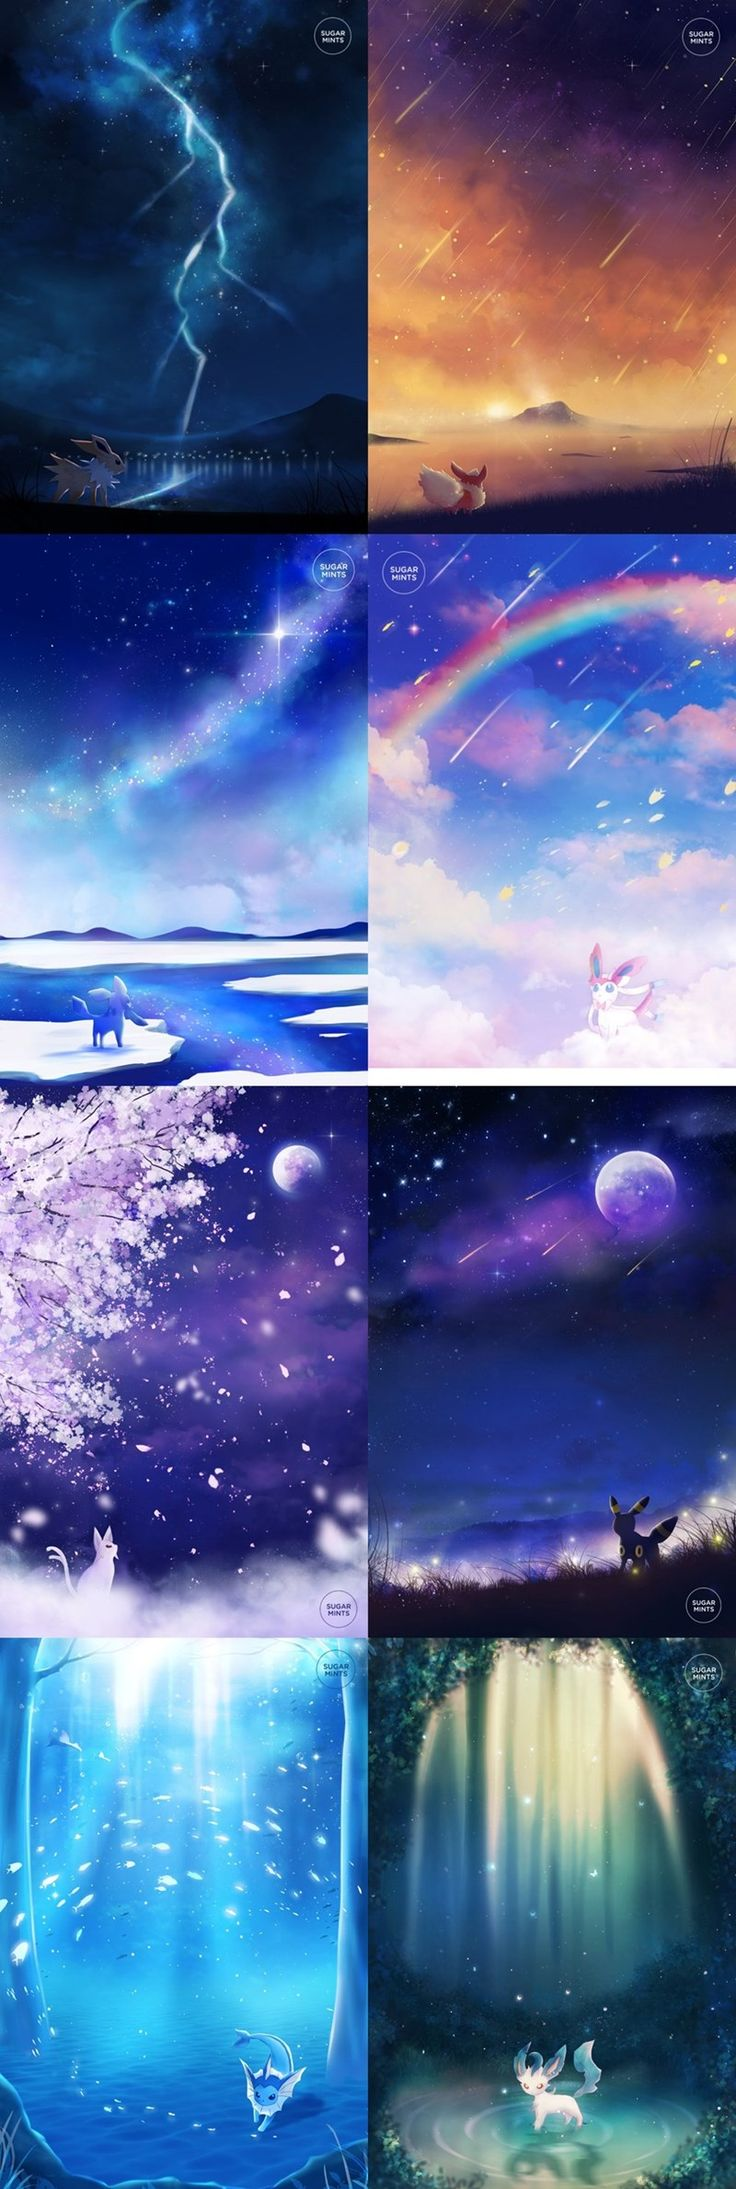 Eeveelutions in Their Element http://sugarmint-dreams.tumblr.com/post/127744792717/all-the-eeveelutions